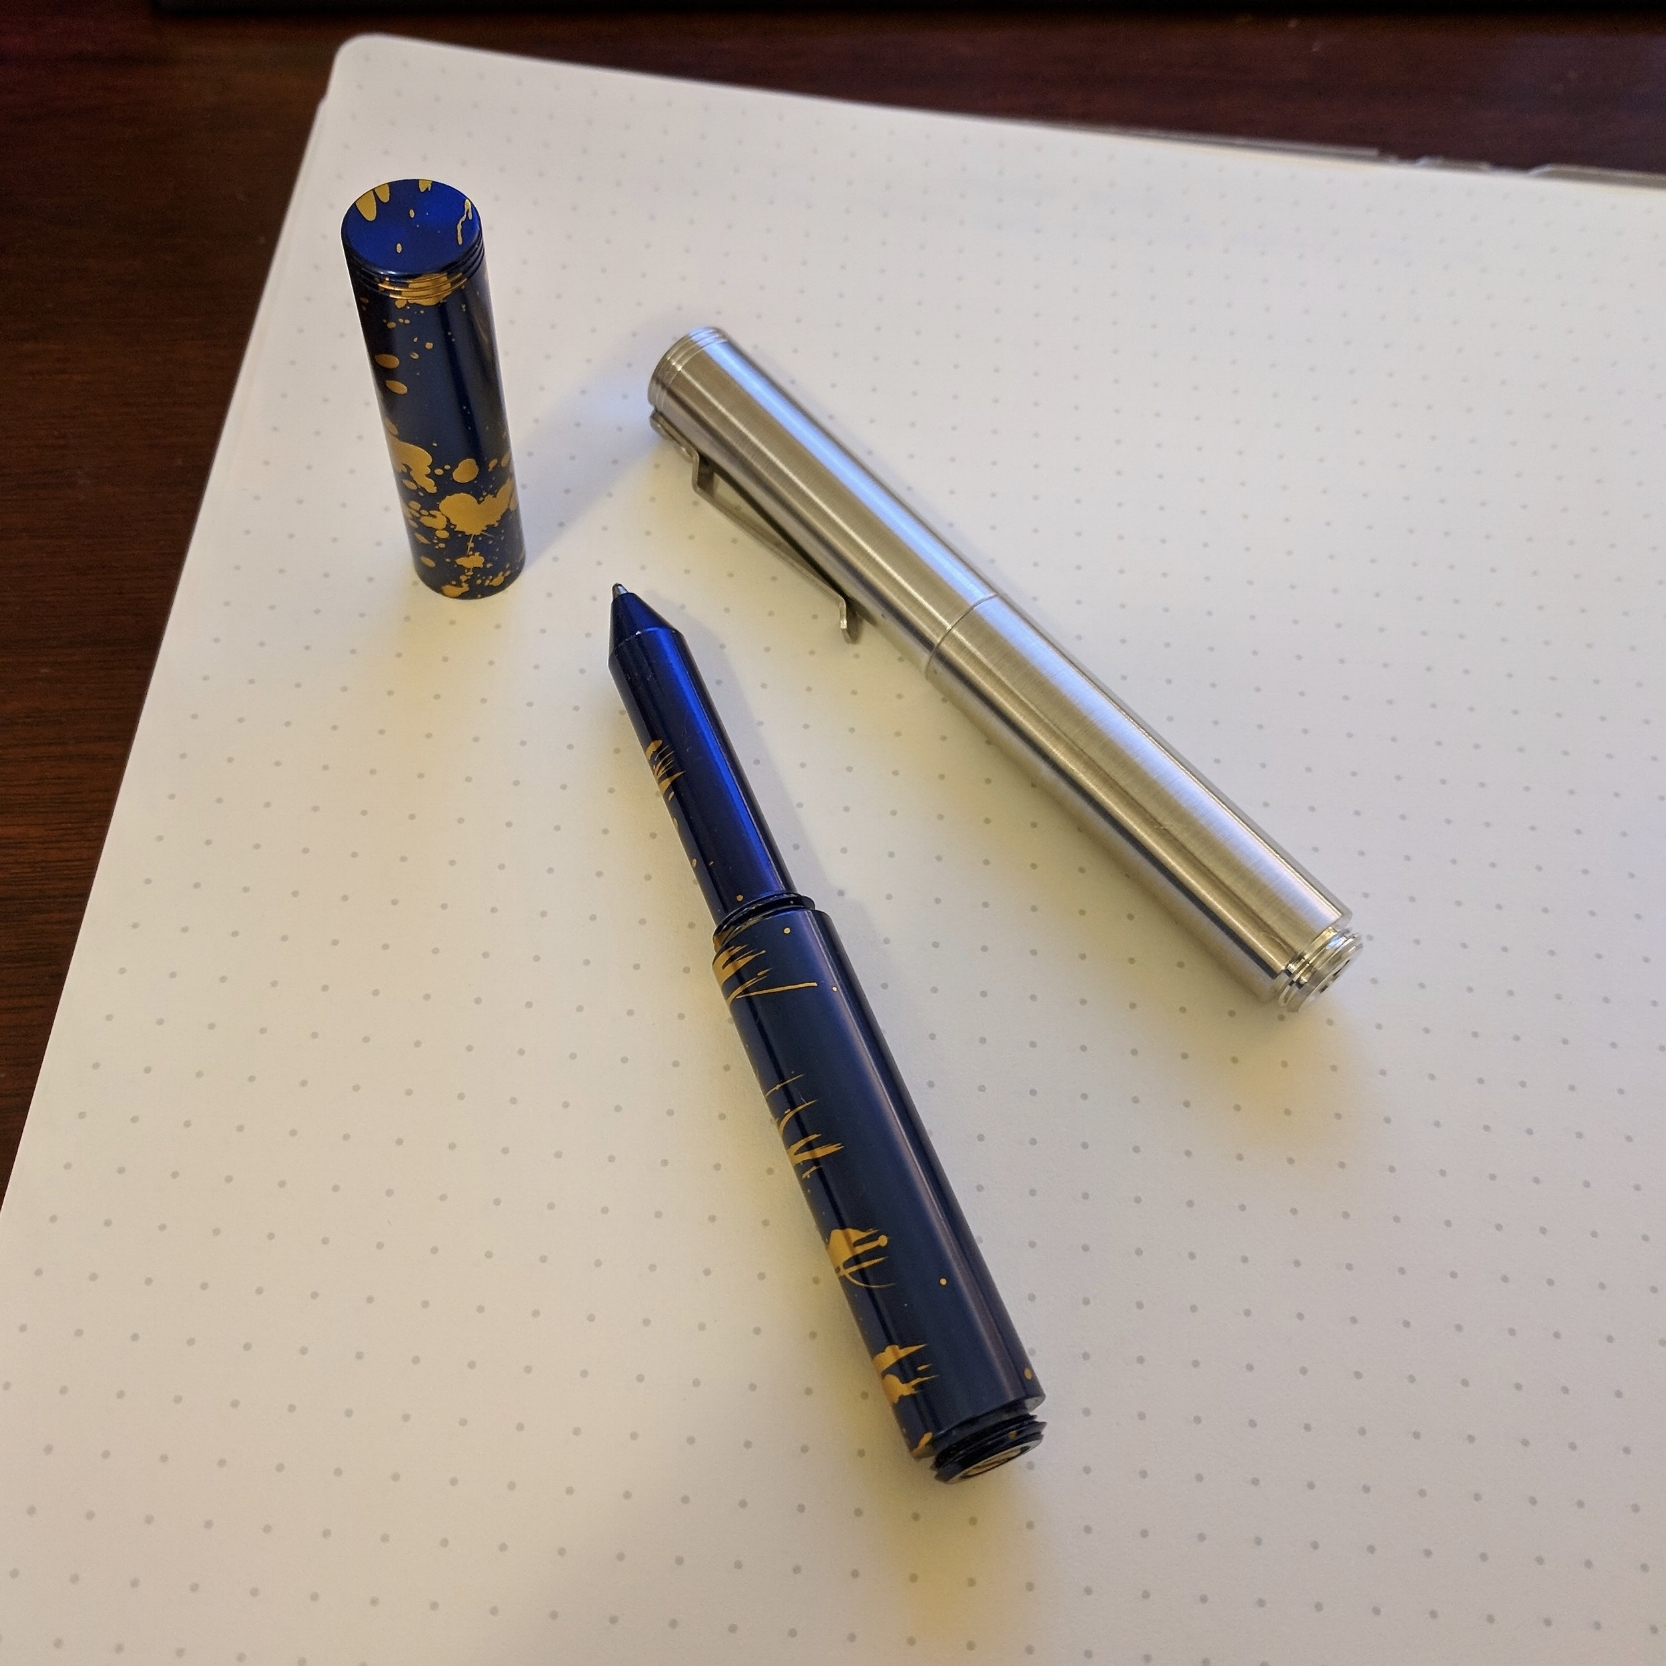 "On the left, a limited edition ""Classic"" that I picked up at the 2017 DC Pen Show; on the right is the standard polished aluminum ""Clip"" version."